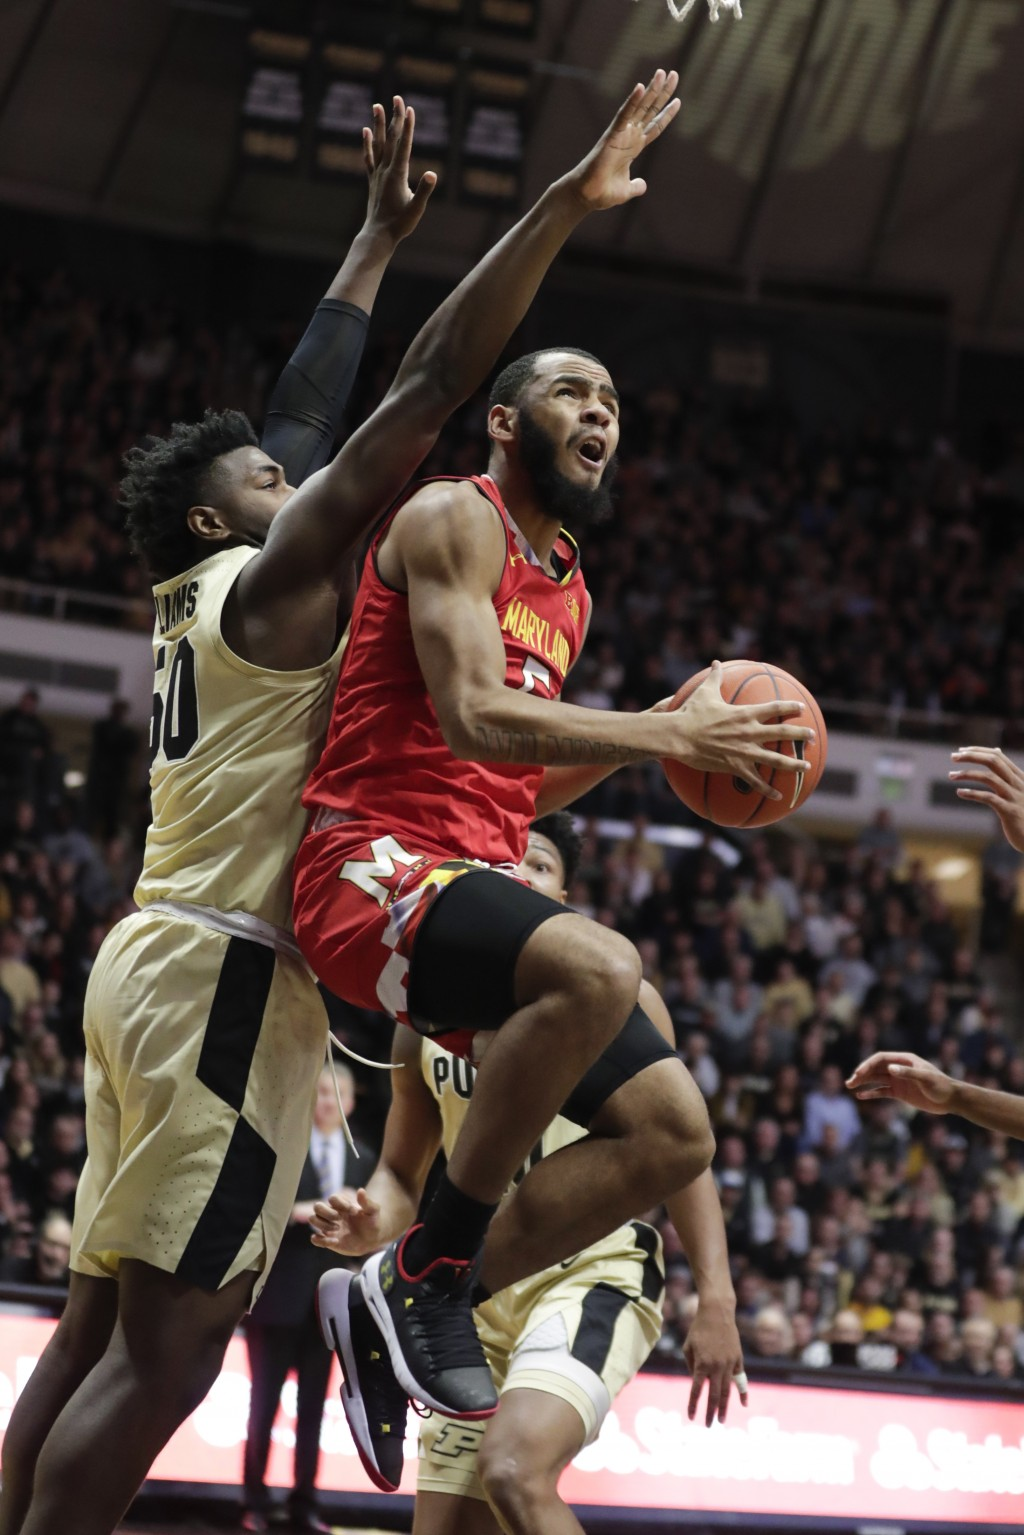 Maryland guard Eric Ayala (5) shoots in front of Purdue forward Trevion Williams (50) during the first half of an NCAA college basketball game in West